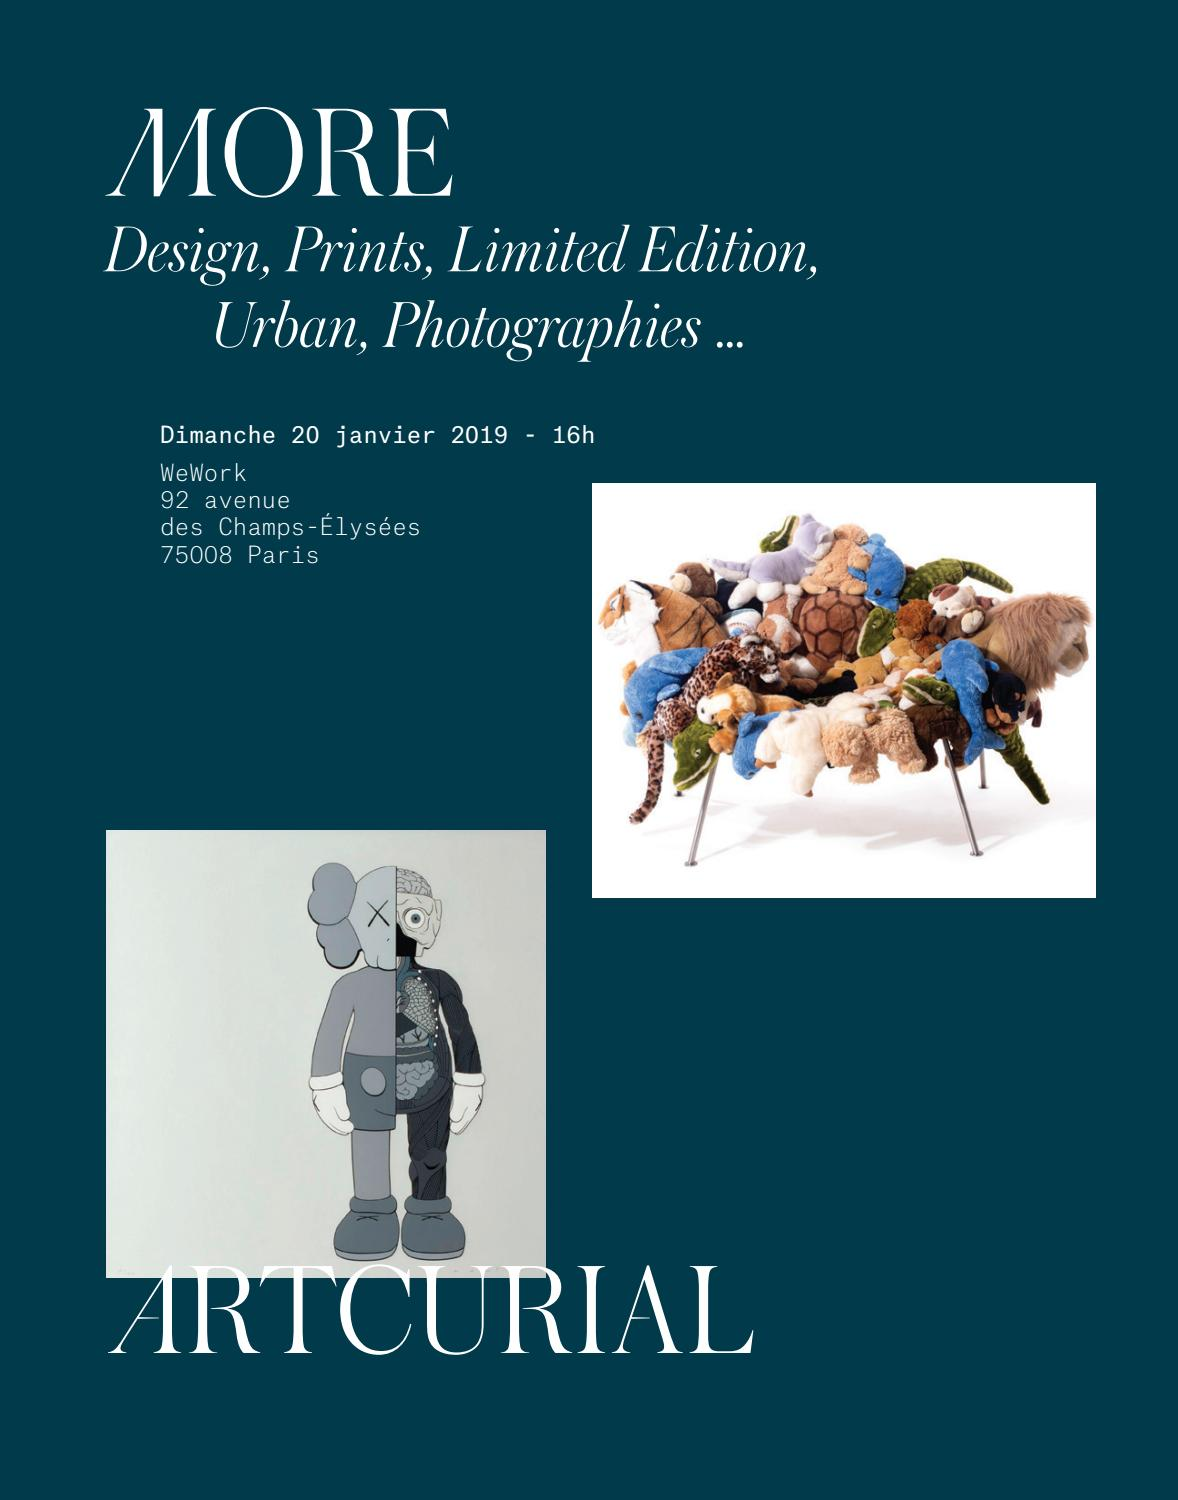 More by Artcurial issuu